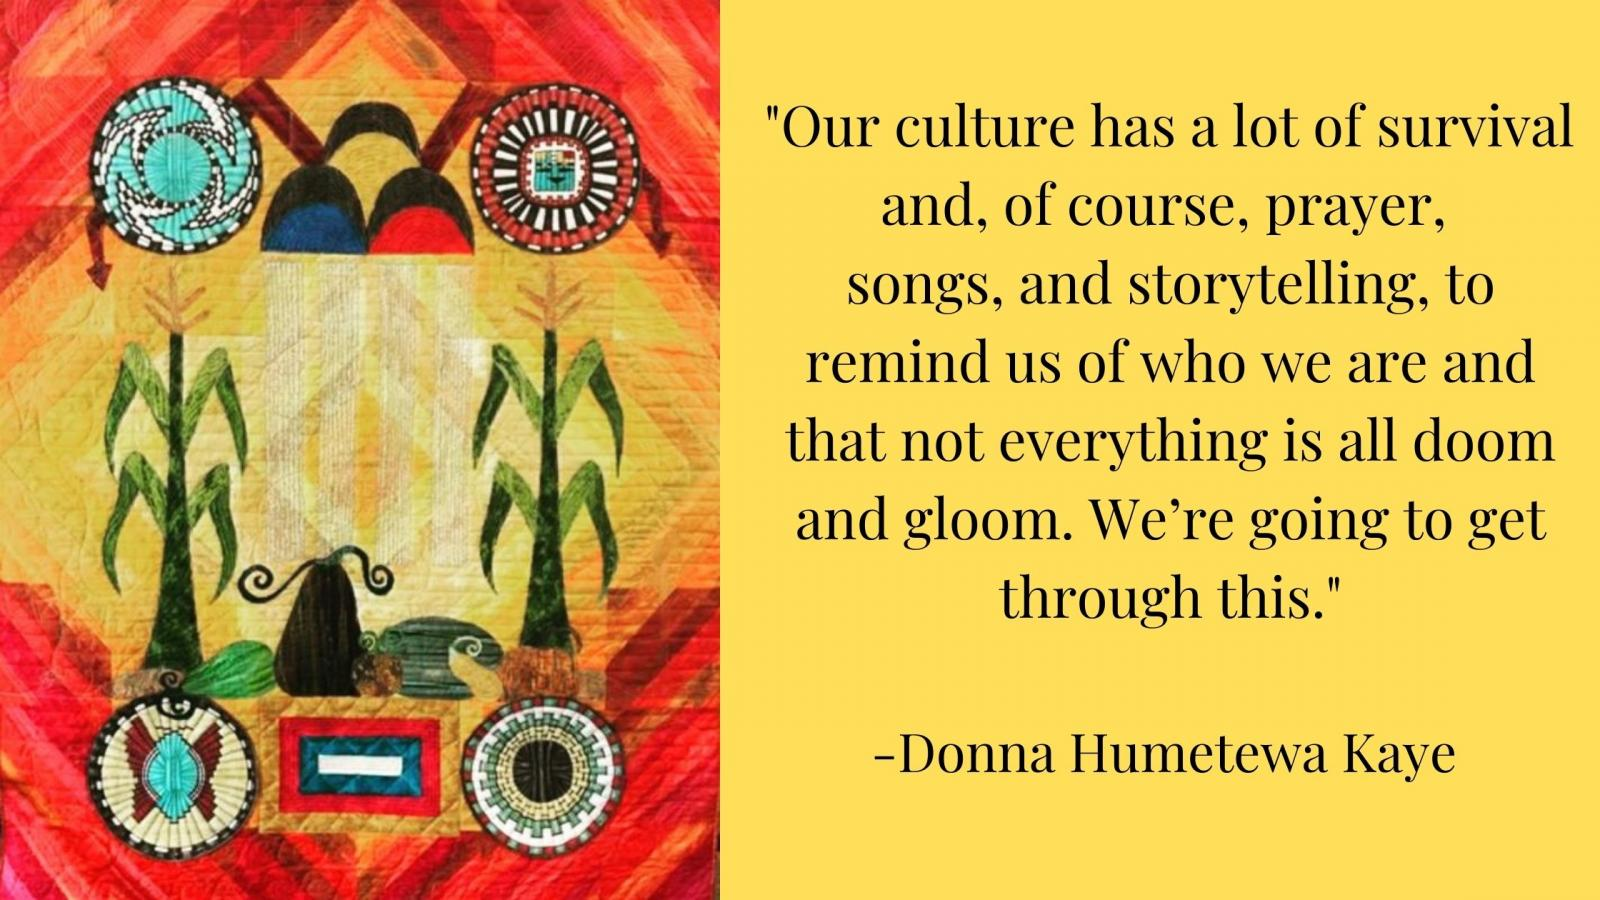 """Our culture has a lot of survival and, of course, prayer, songs, and storytelling, to remind us of who we are and that not everything is all doom and gloom. We're going to get through this."" -Donna Humetewa Kaye"